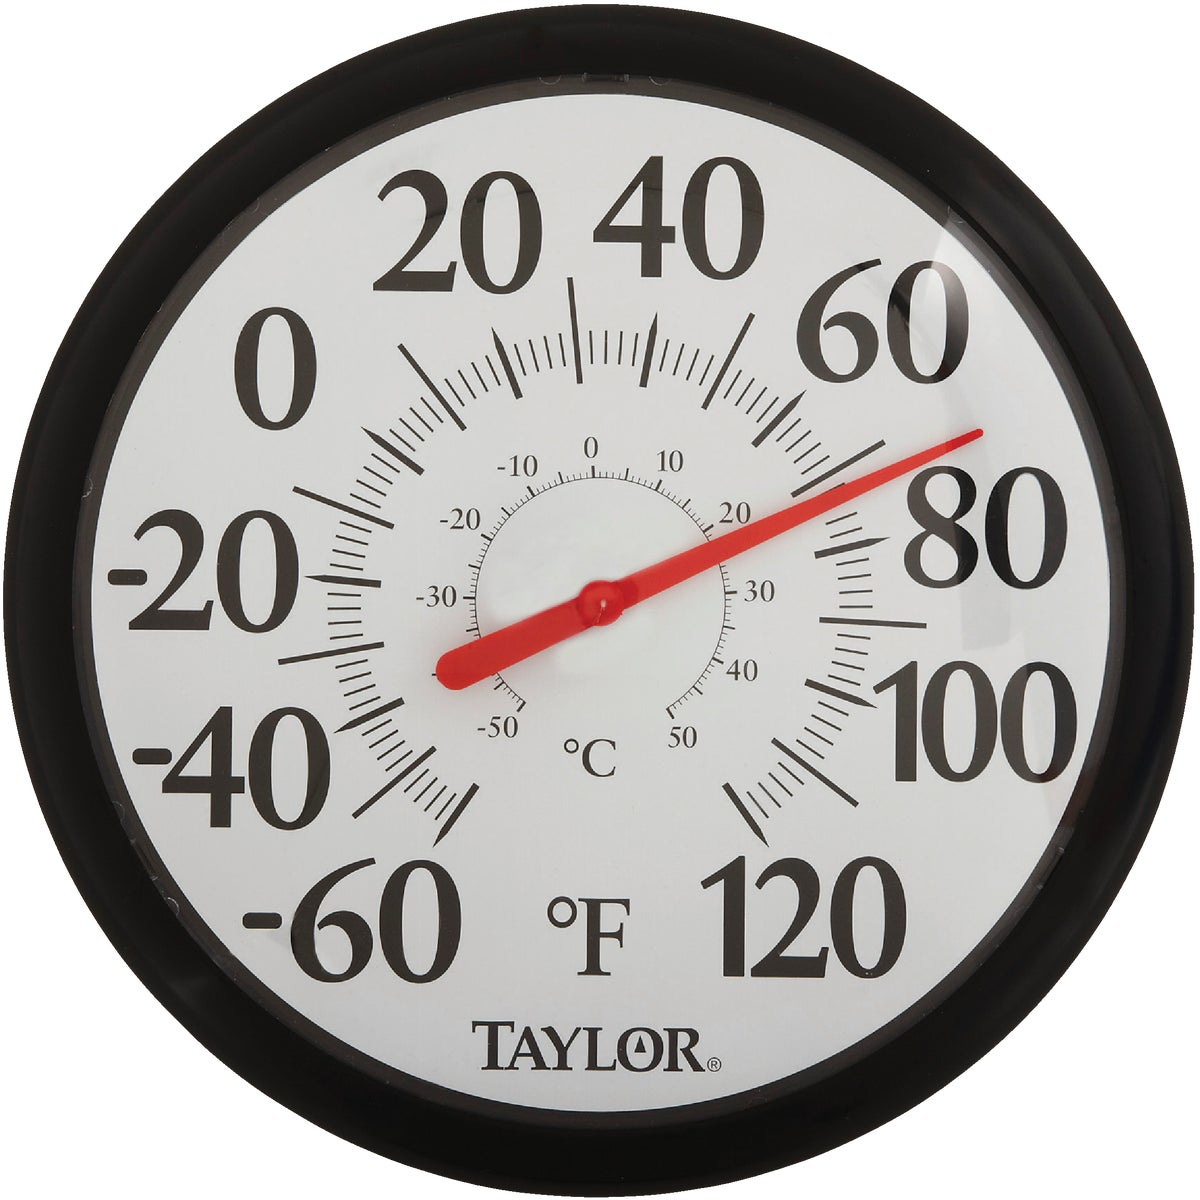 EZ READ DIAL THERMOMETER